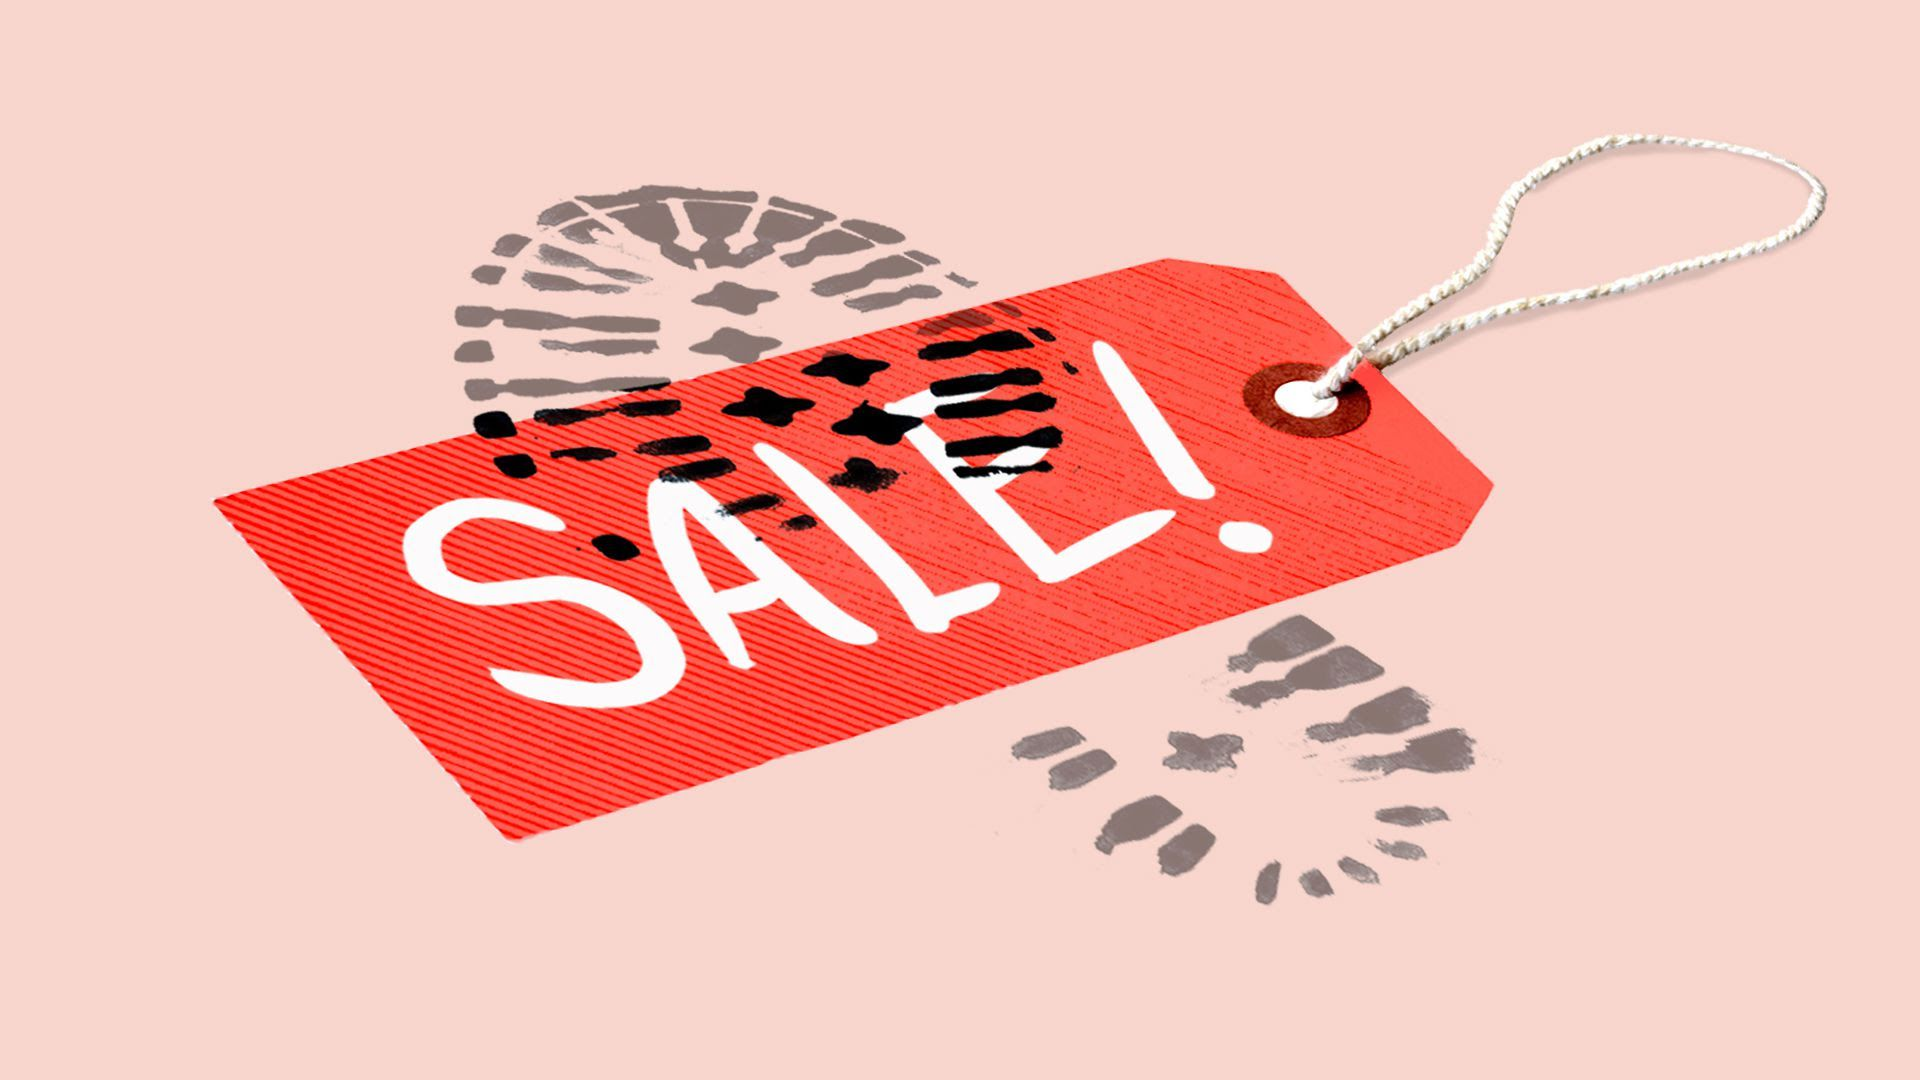 Axios illustration of footprint over 'Sale' tag